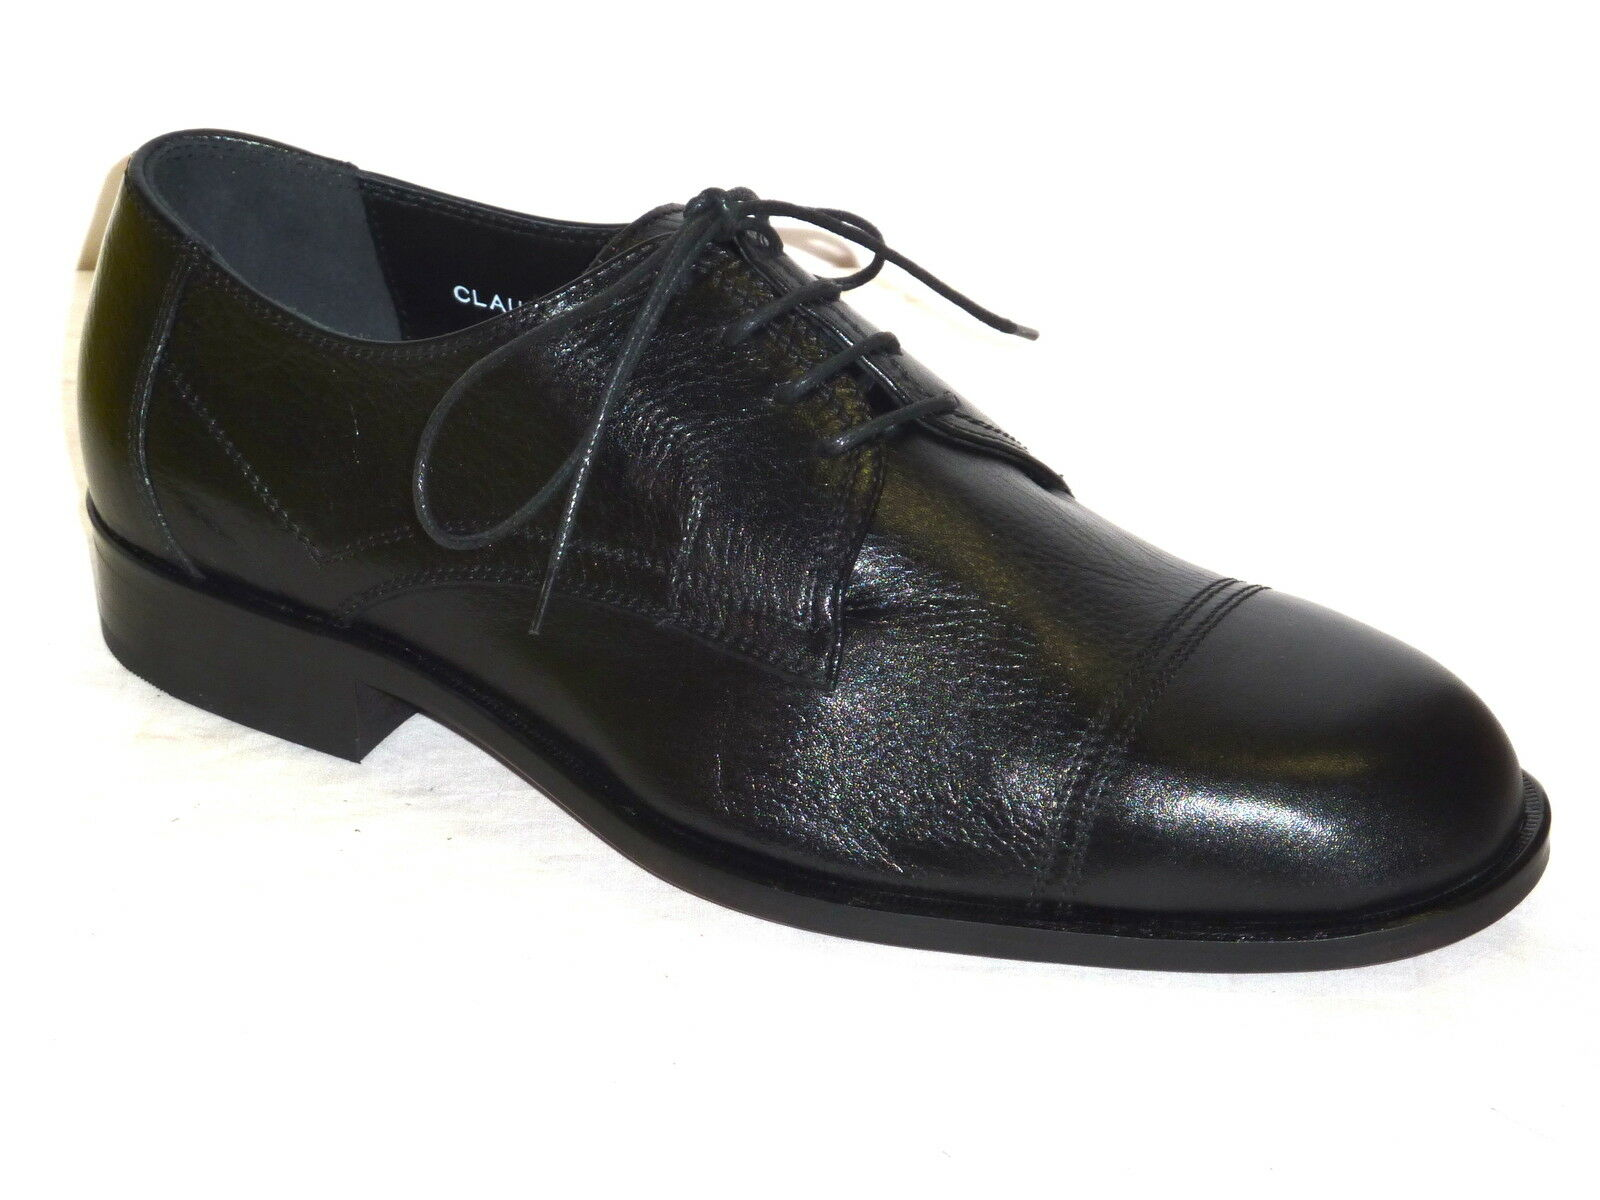 4728 VALLEgreen shoes men CLASSICHE ALLACCIATE PELLE black MODA COMODA n. 43